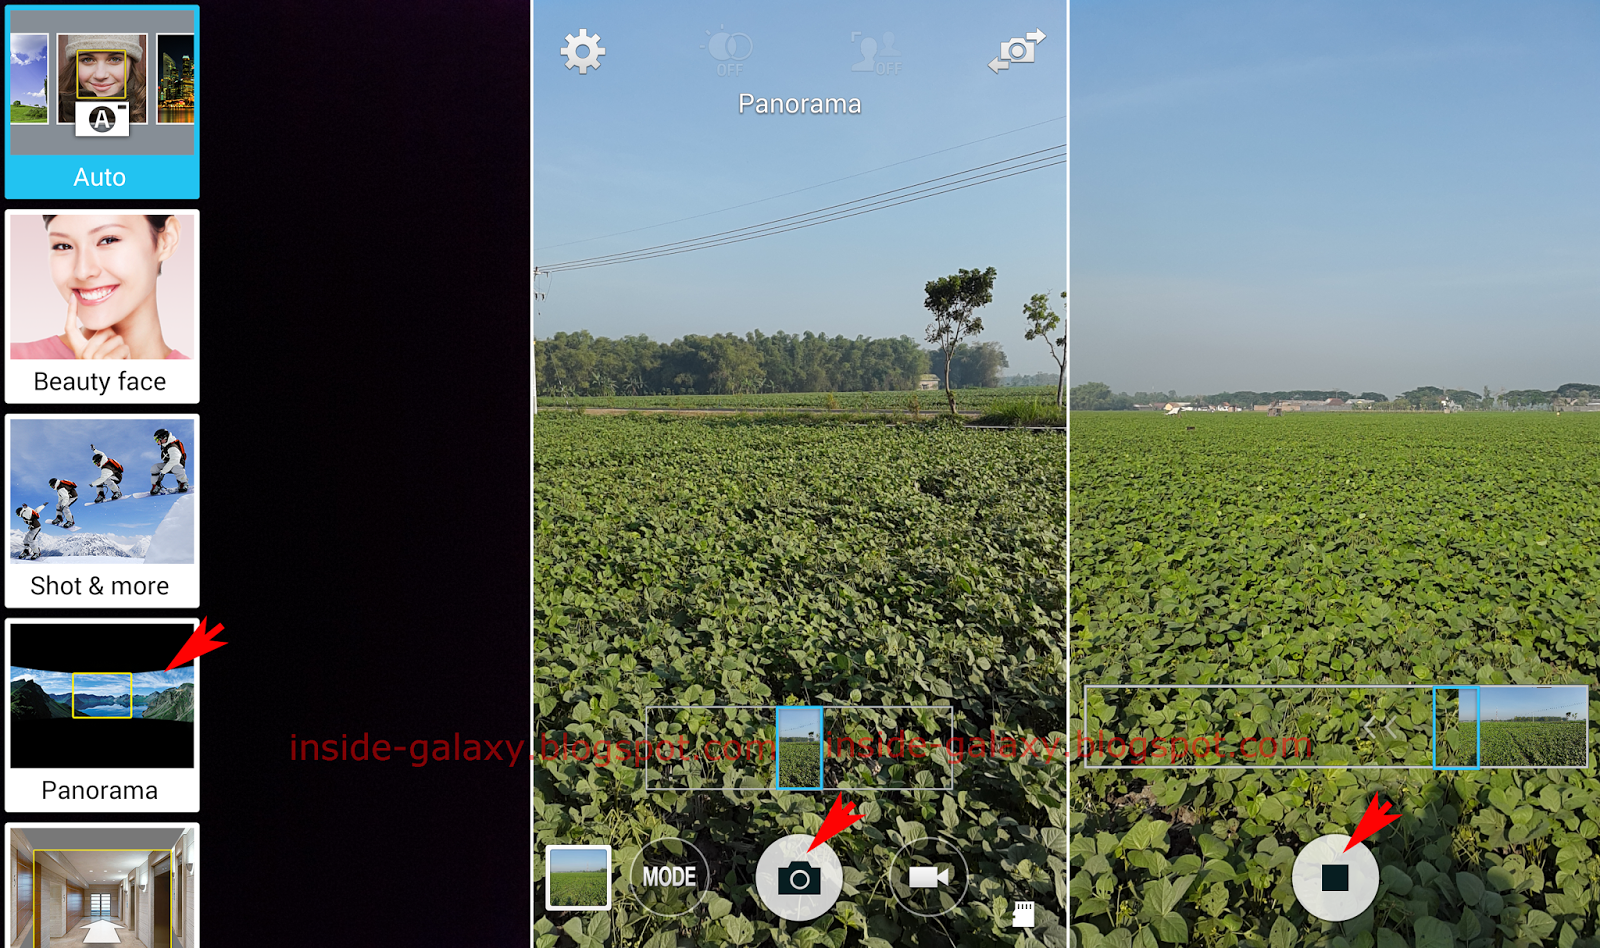 Samsung Galaxy S5: How To Take A Panorama Photo In Android